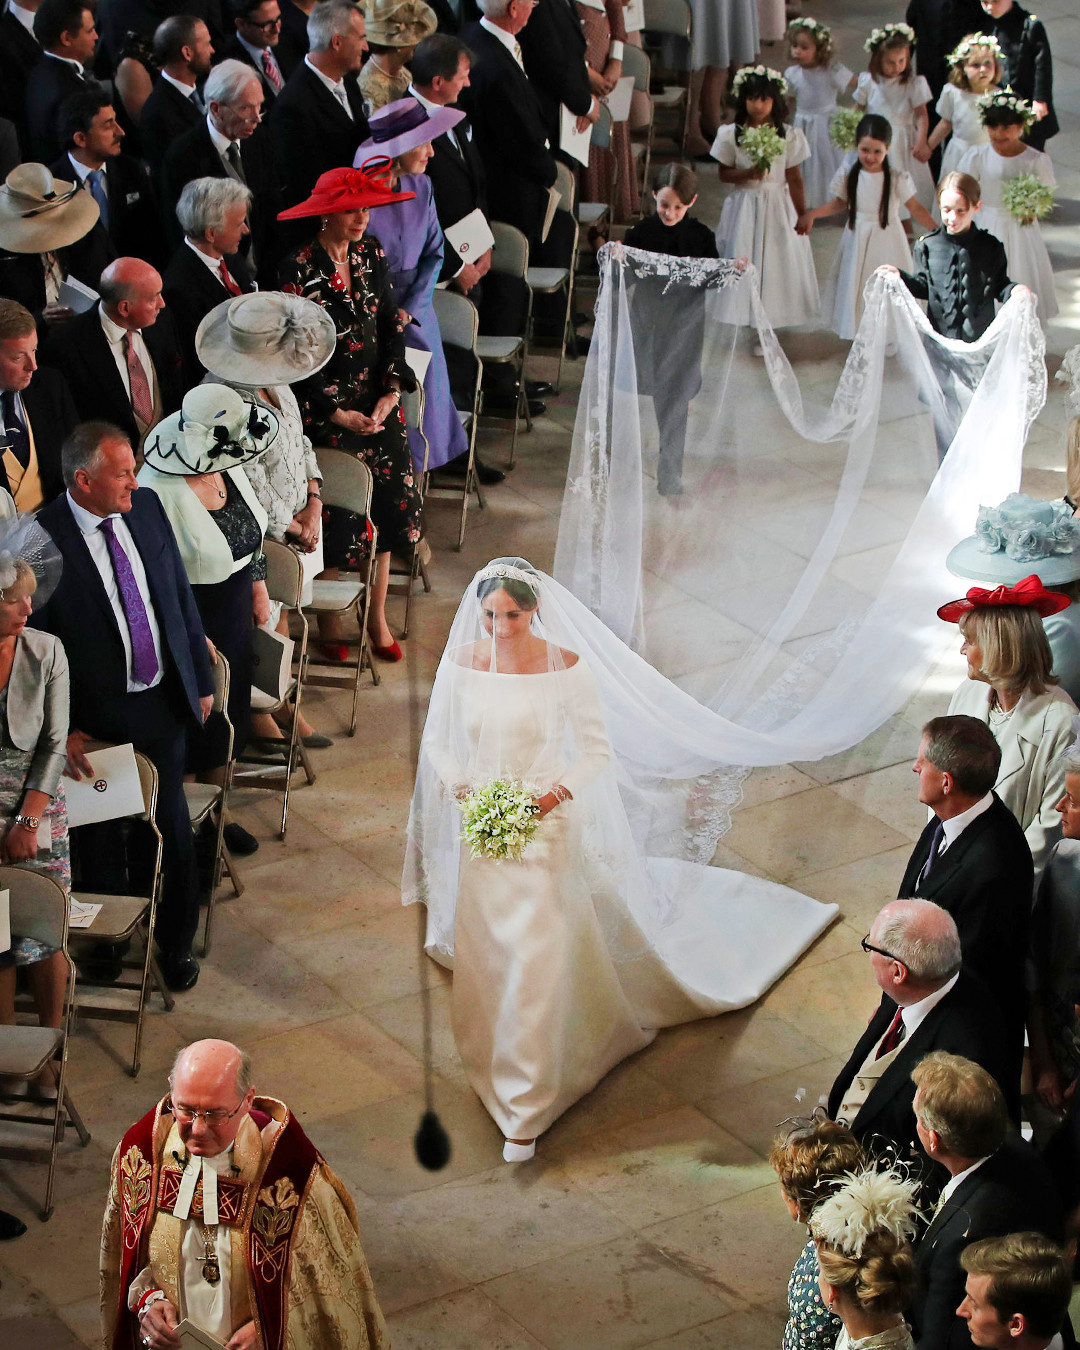 how meghan markle s wedding dress compares to kate middleton s e online how meghan markle s wedding dress